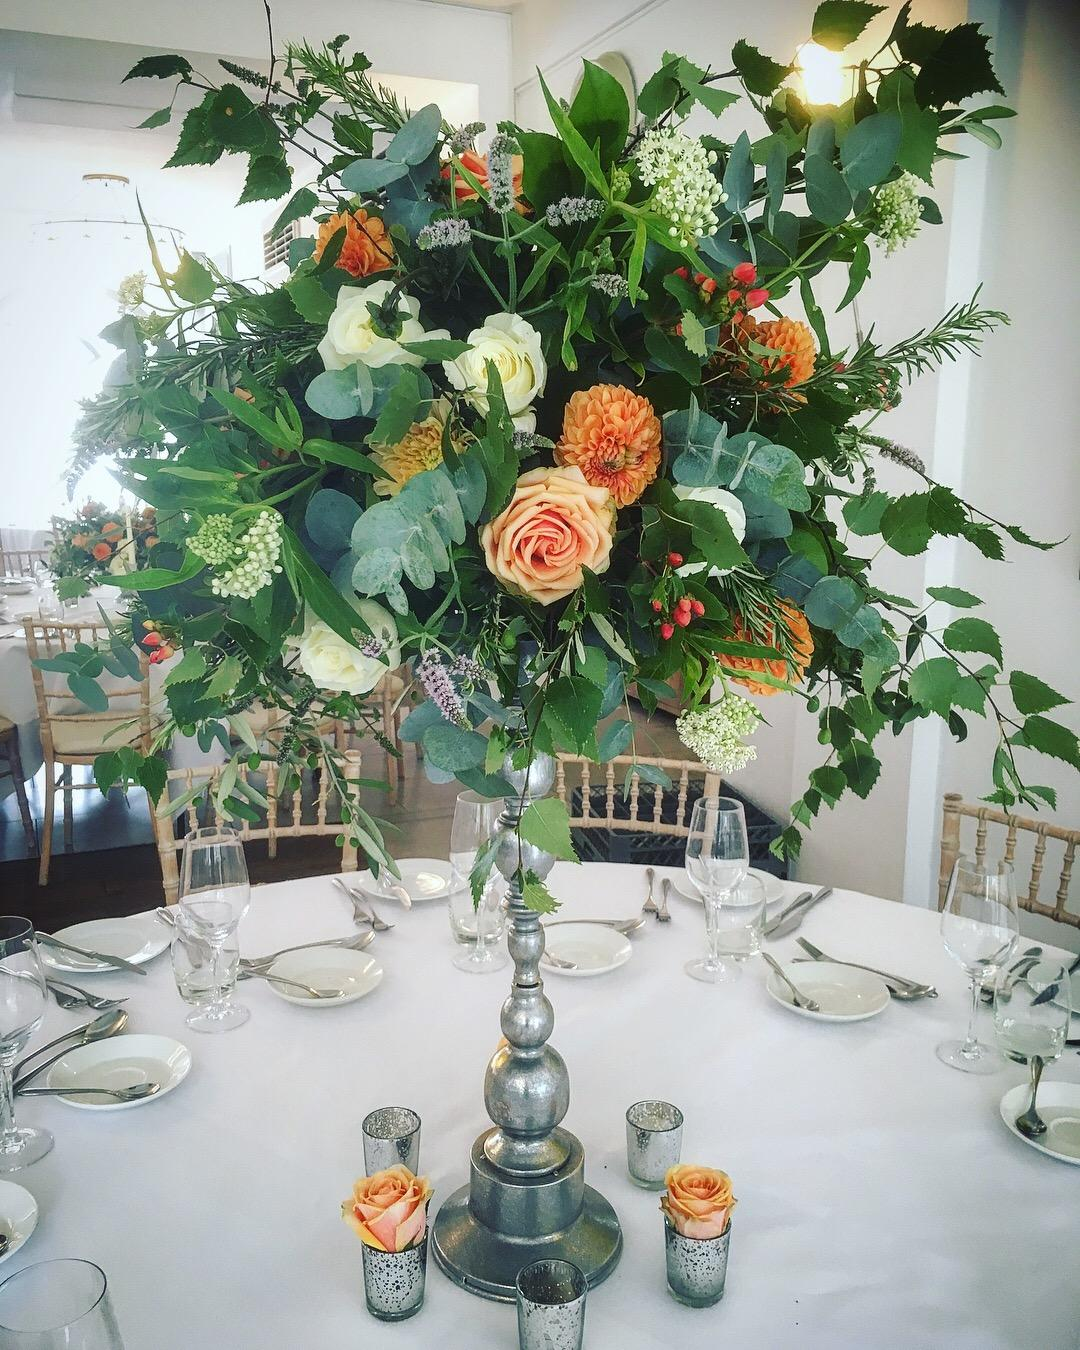 TALL SILVER CANDLESTICK TABLE CENTREPIECE WILD FOLIAGE ARRANGEMENT ORANGE PEACH FLOWERS WEDDING ITALIAN VILLA